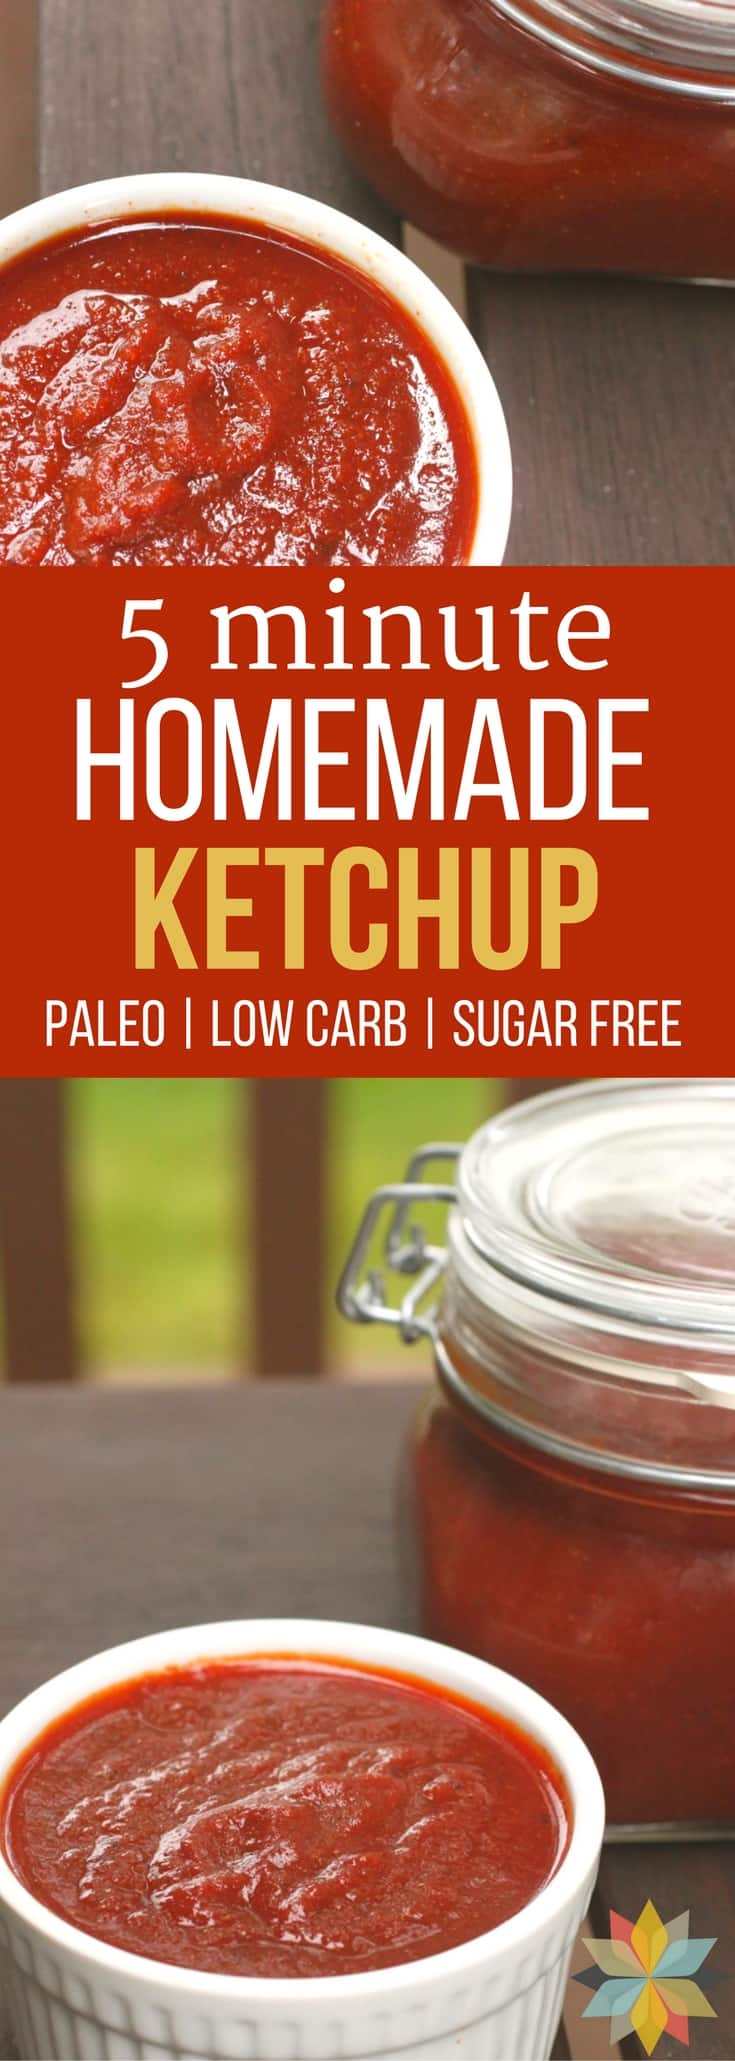 Easy Homemade Ketchup Recipe